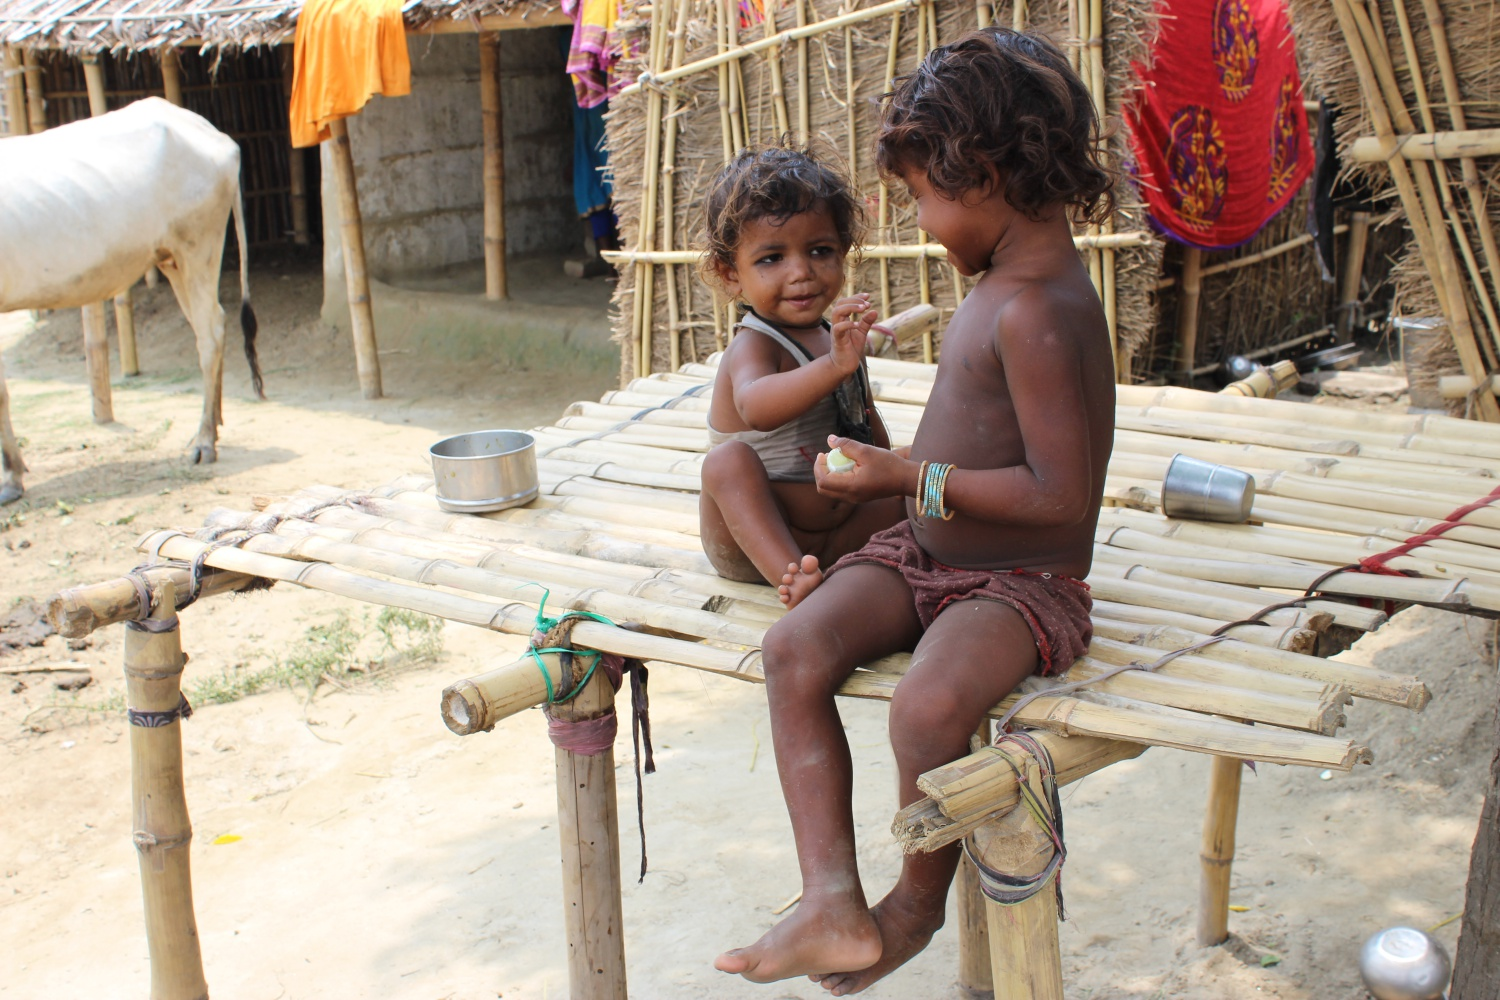 Scenes of mosquito bites all over the body among the children in Ganesthan village of Madhepura are quite common. India bears a huge burden of mosquito-borne diseases, contributing 34 percent of global dengue and 11 percent of global malaria. Despite of this, the government has made no headway in talking the mosquito menace.